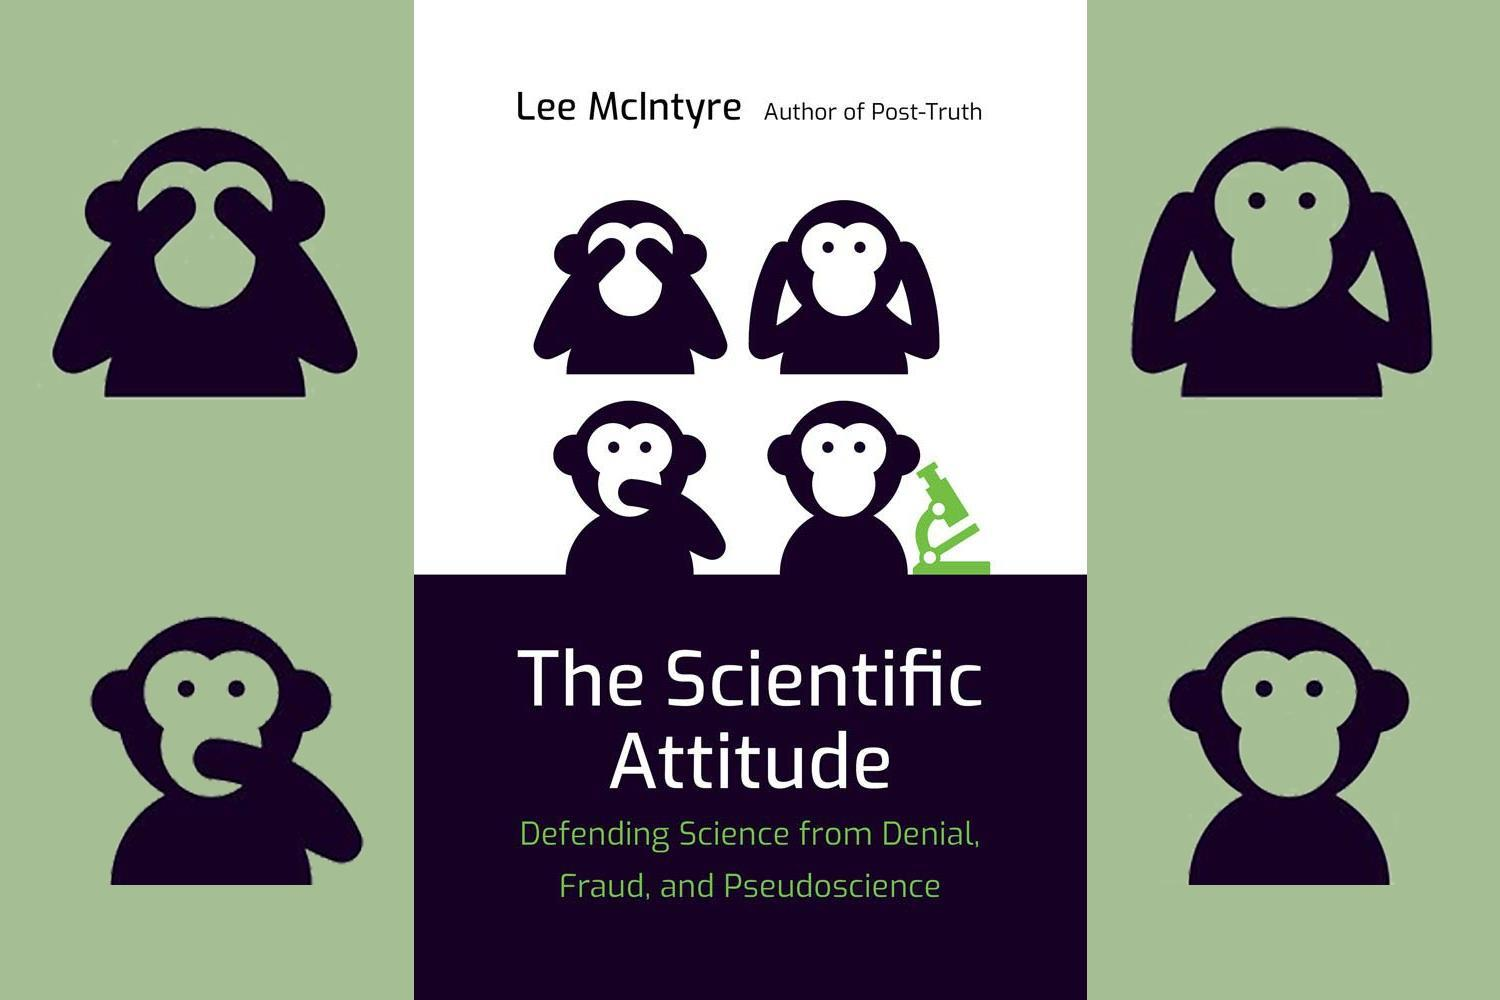 The Scientific Attitude: Defending Science from Denial, Fraud, and